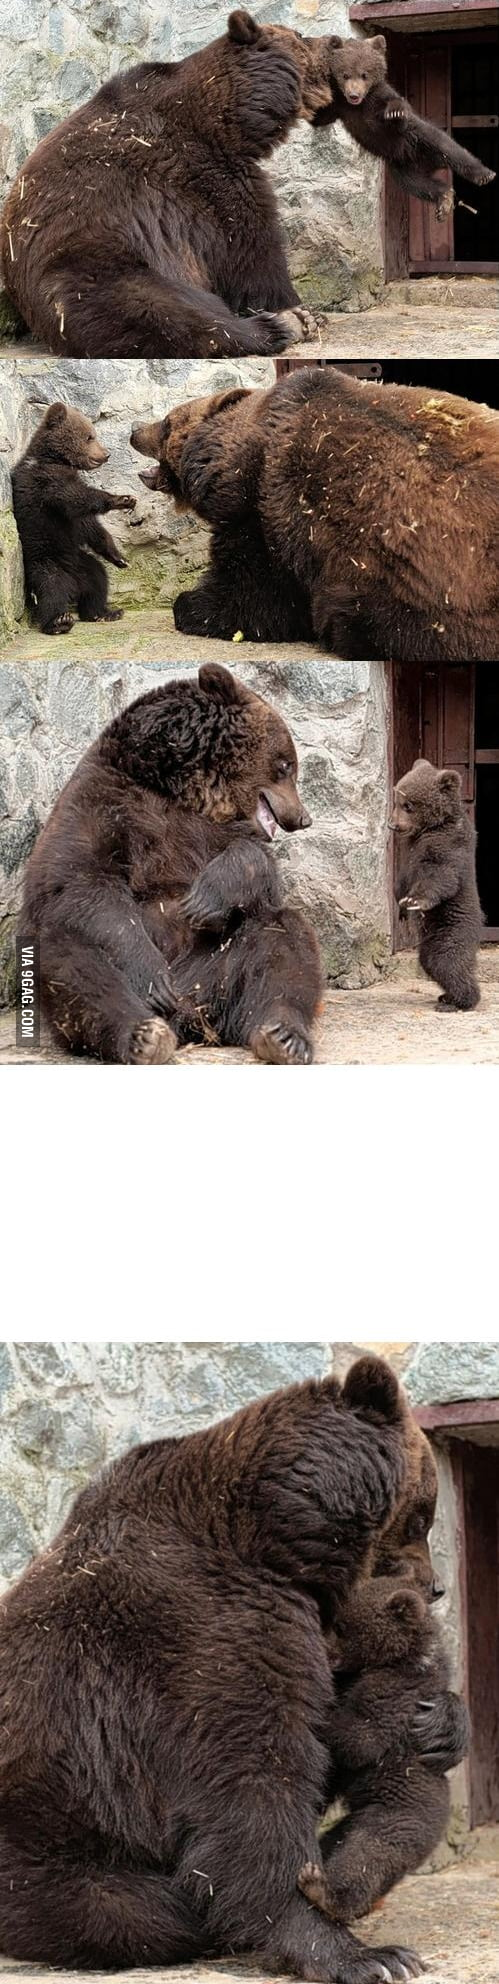 Parenting level: bear